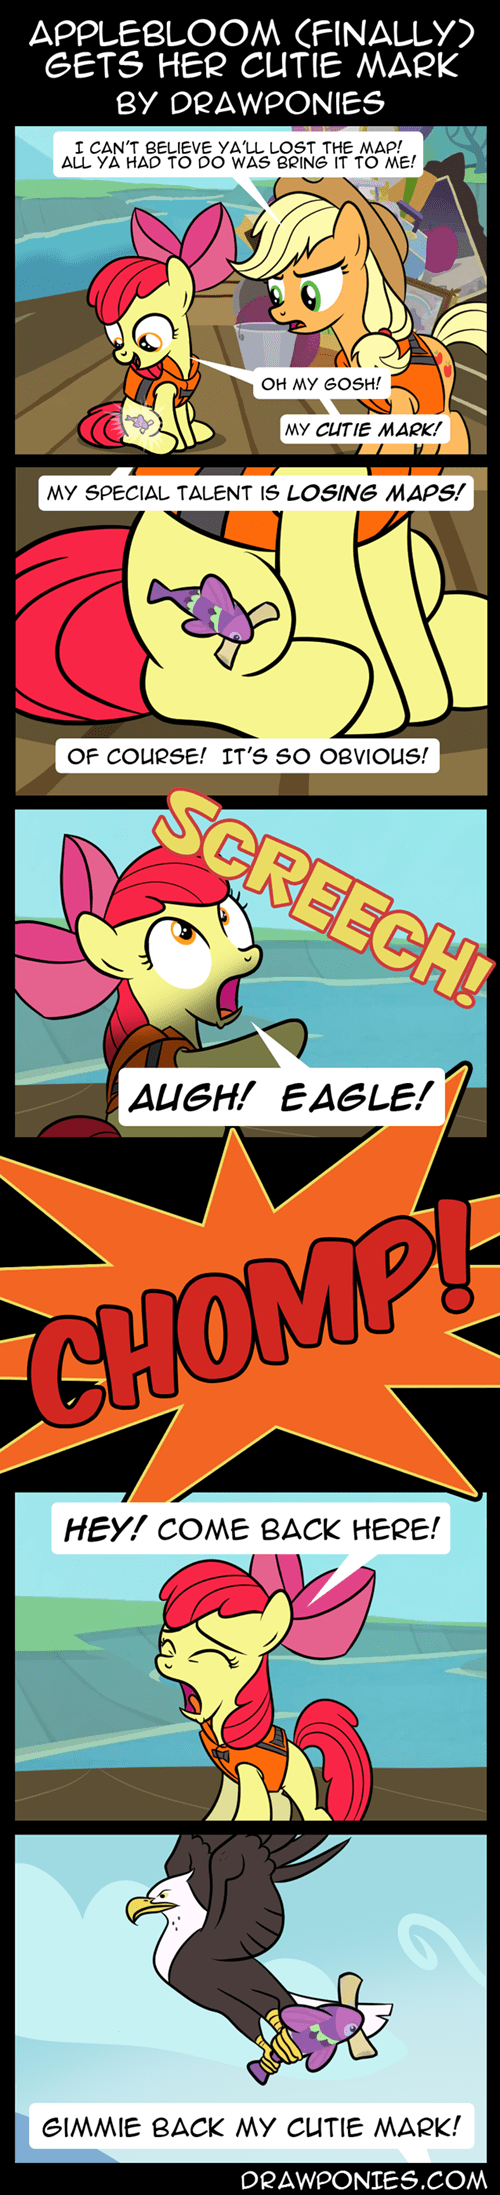 applejack,cutie mark,apple bloom,Maps